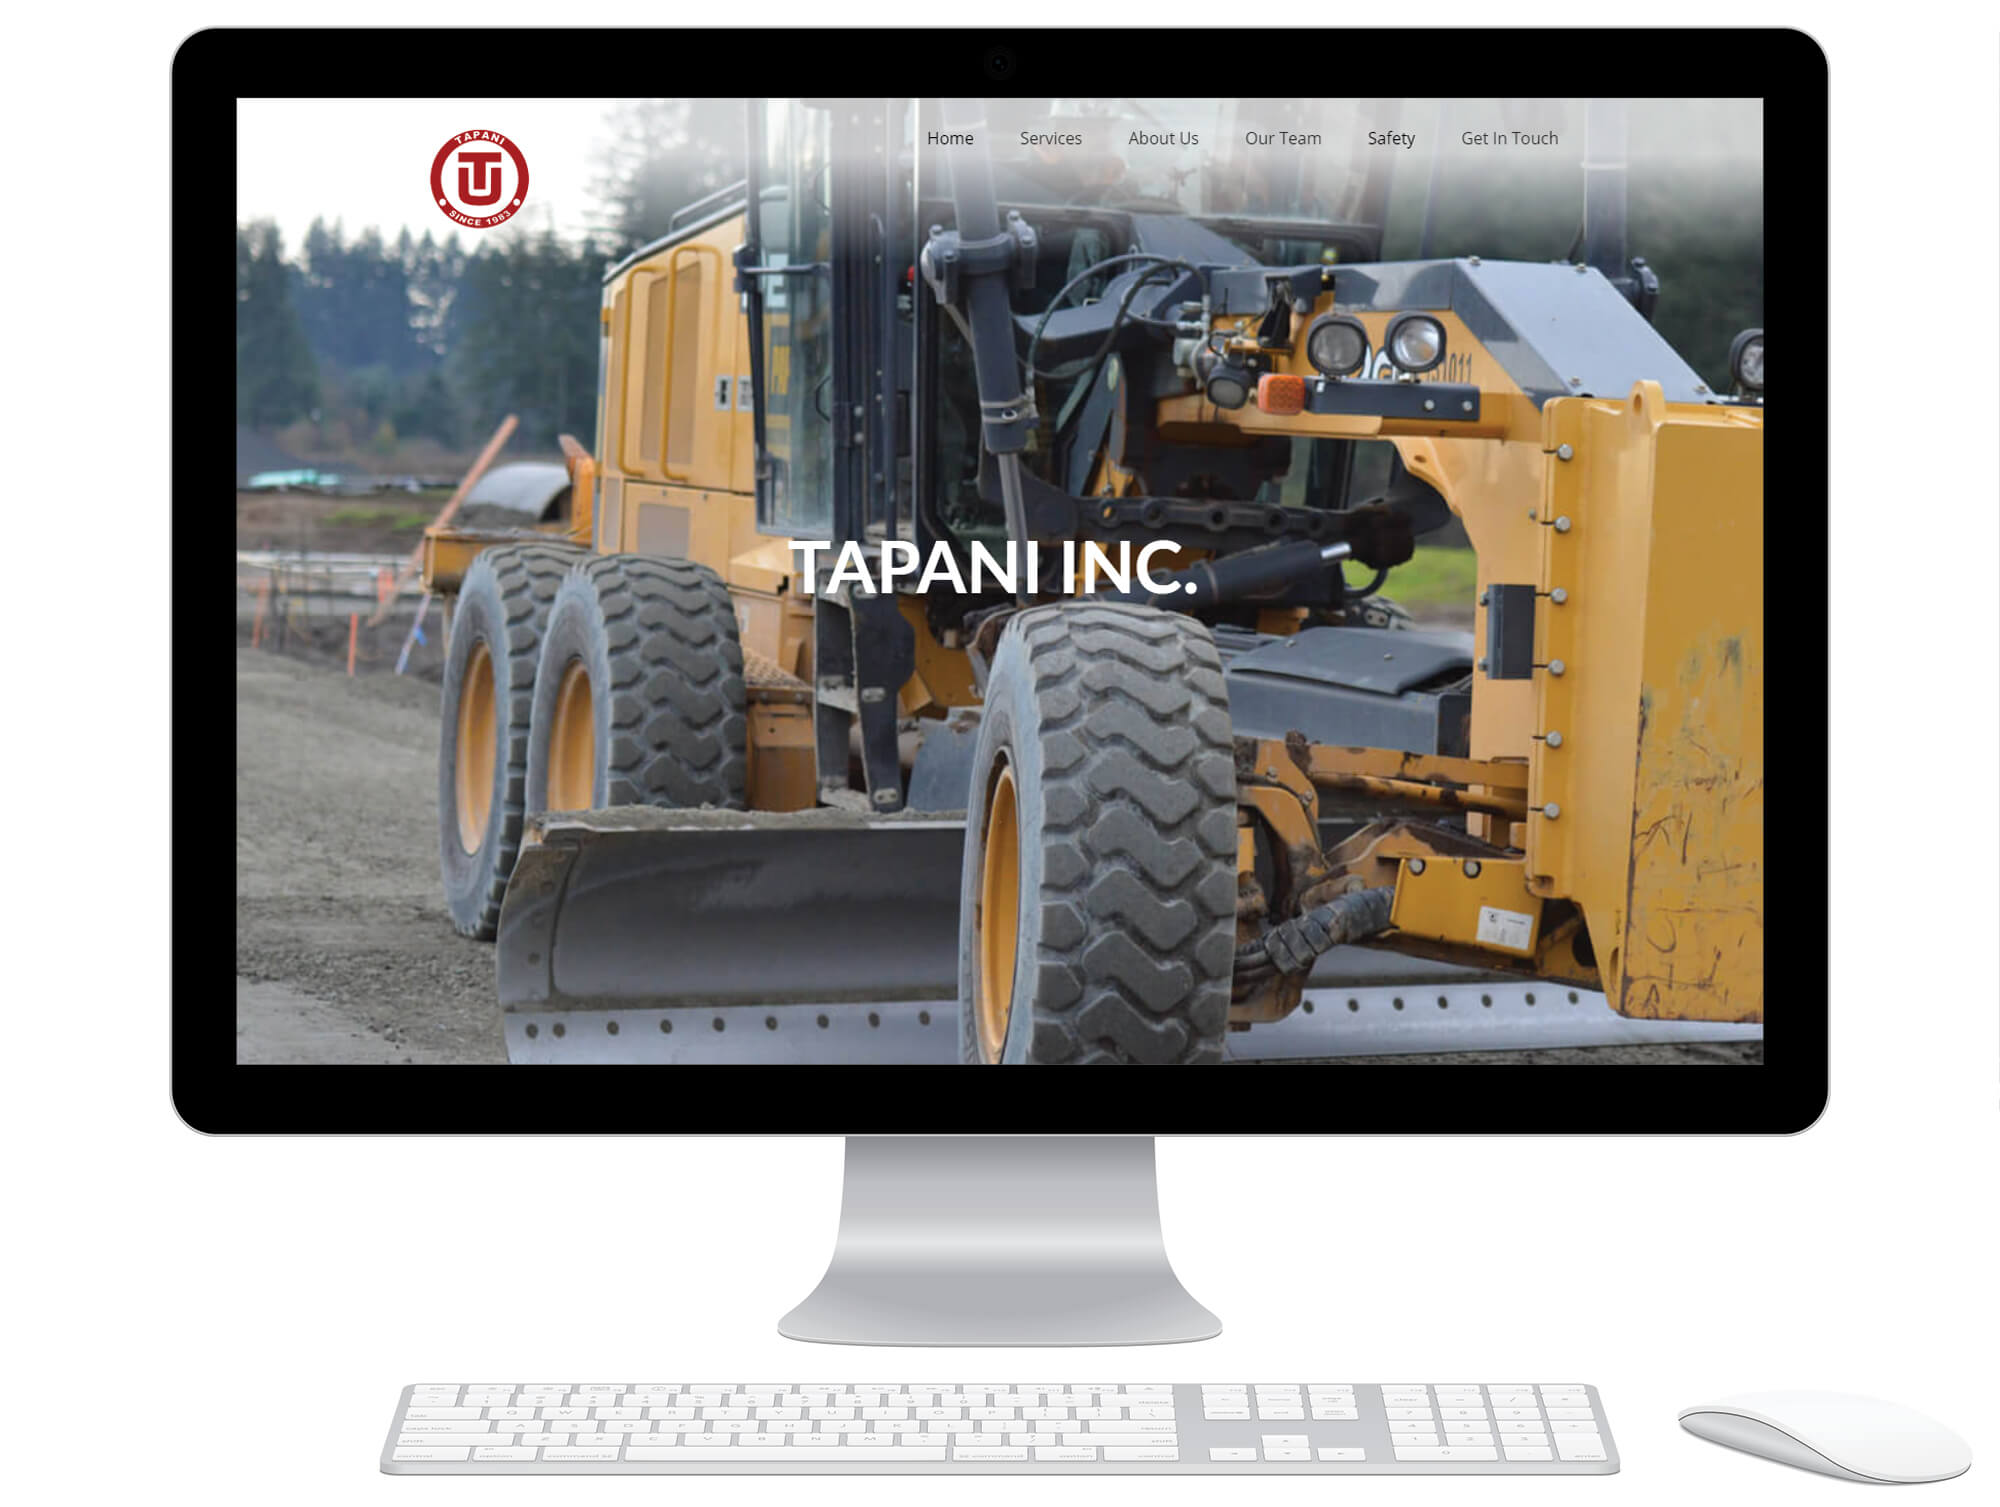 Tapani homepage displayed on a computer monitor